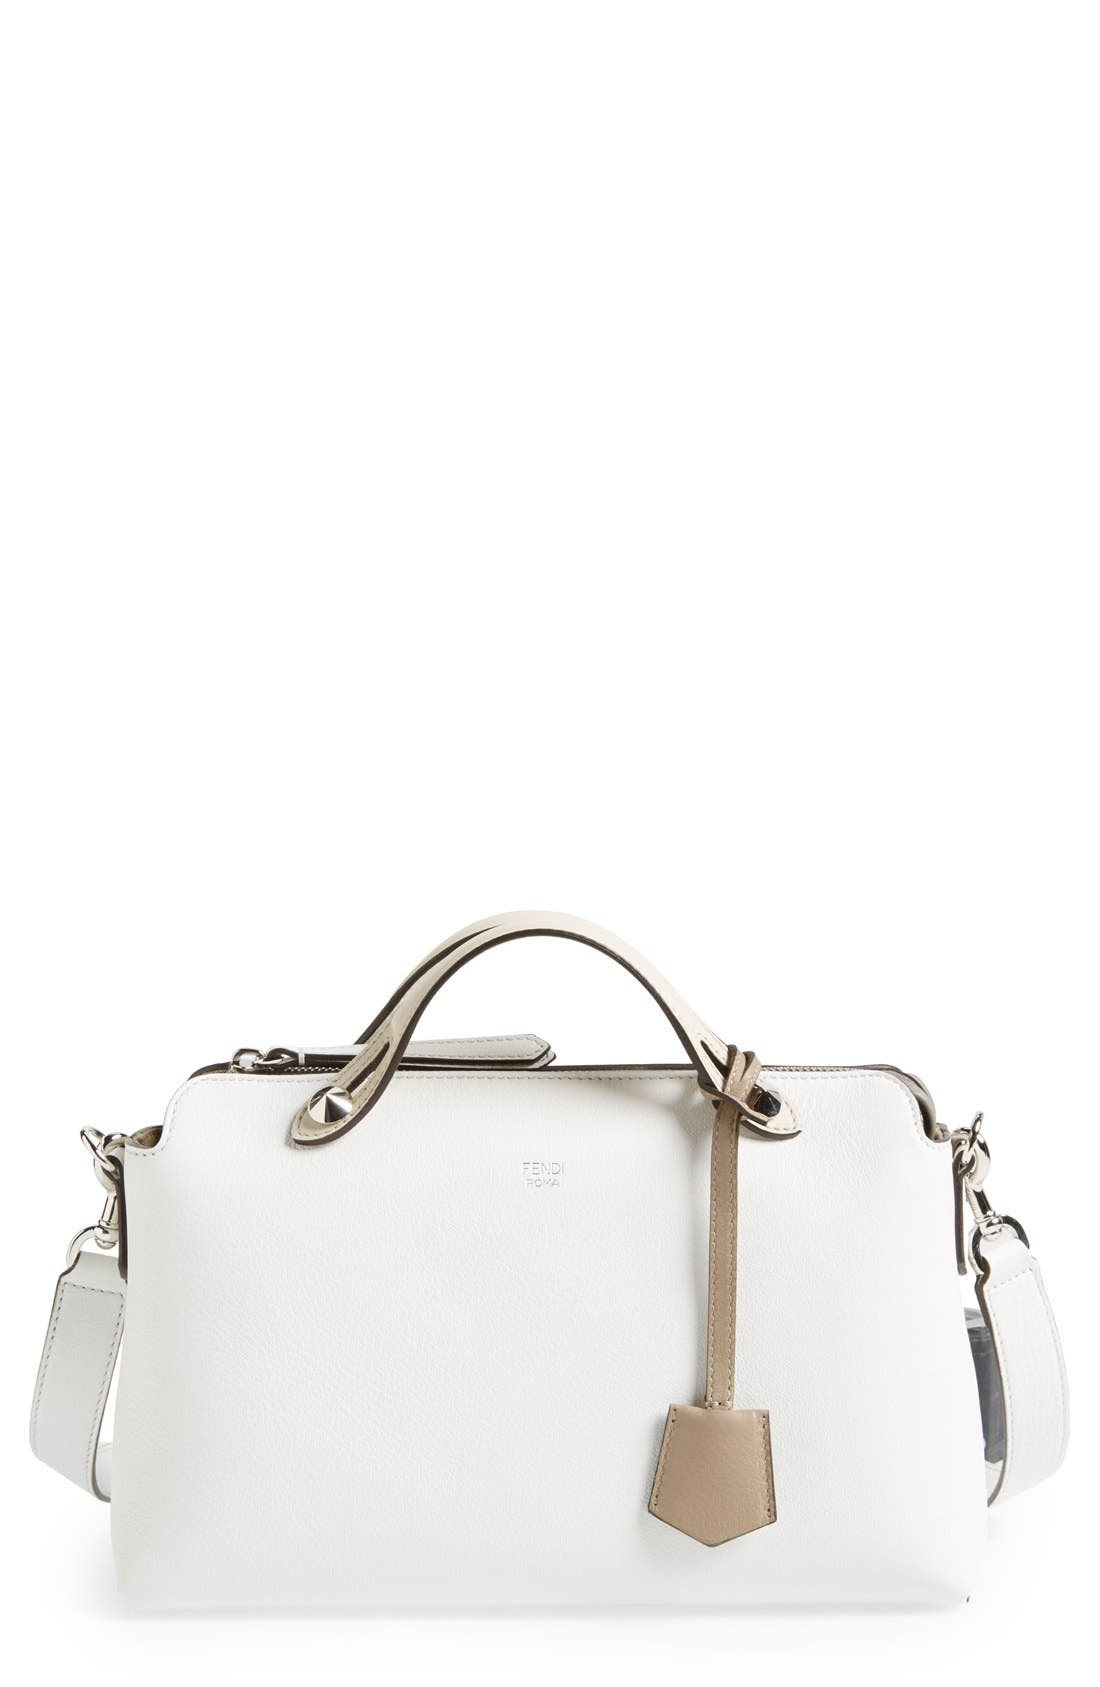 Alternate Image 1 Selected - Fendi 'Small By the Way' Shoulder Bag